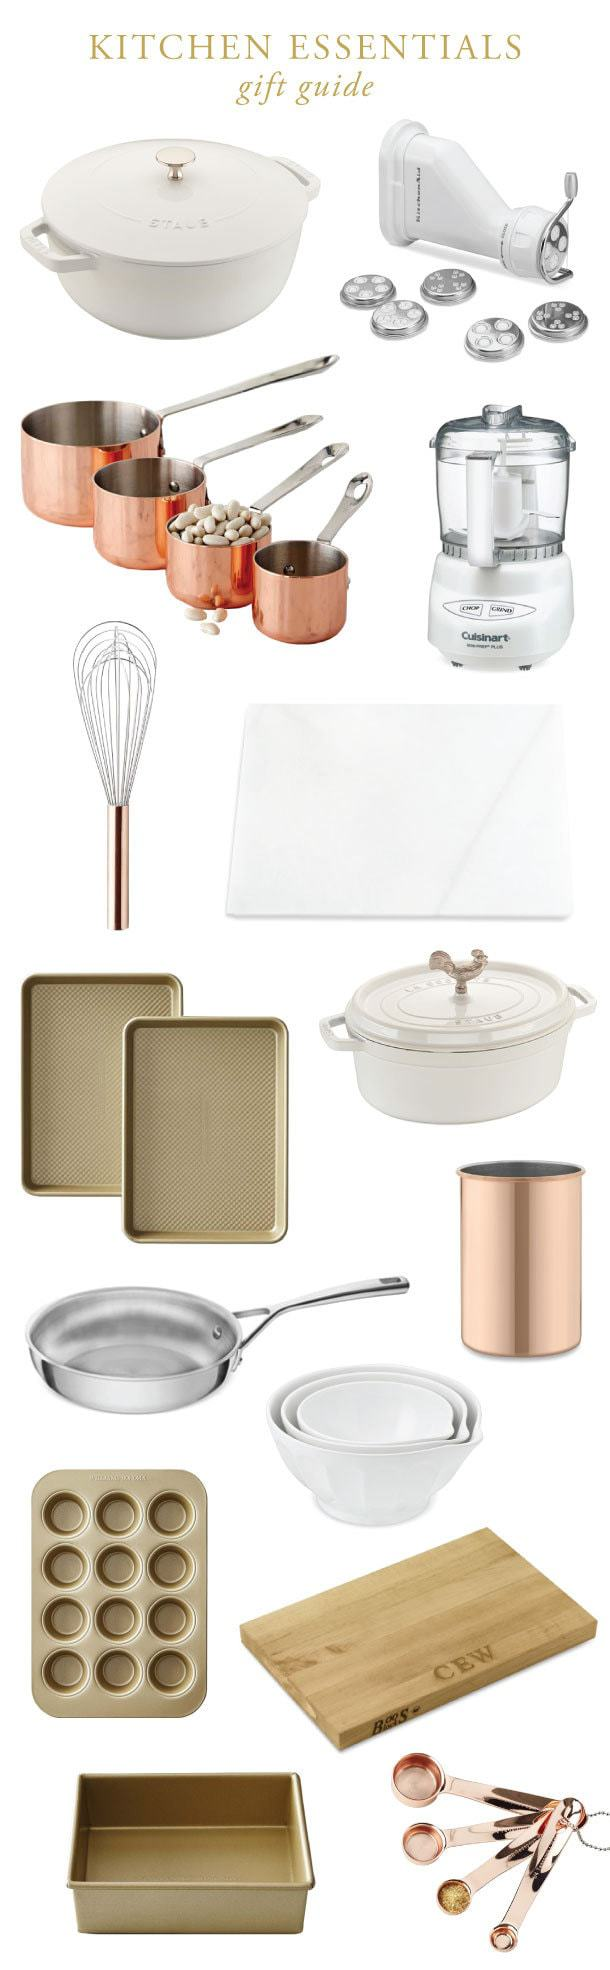 Classic Kitchen Essentials Christmas Gift Guide